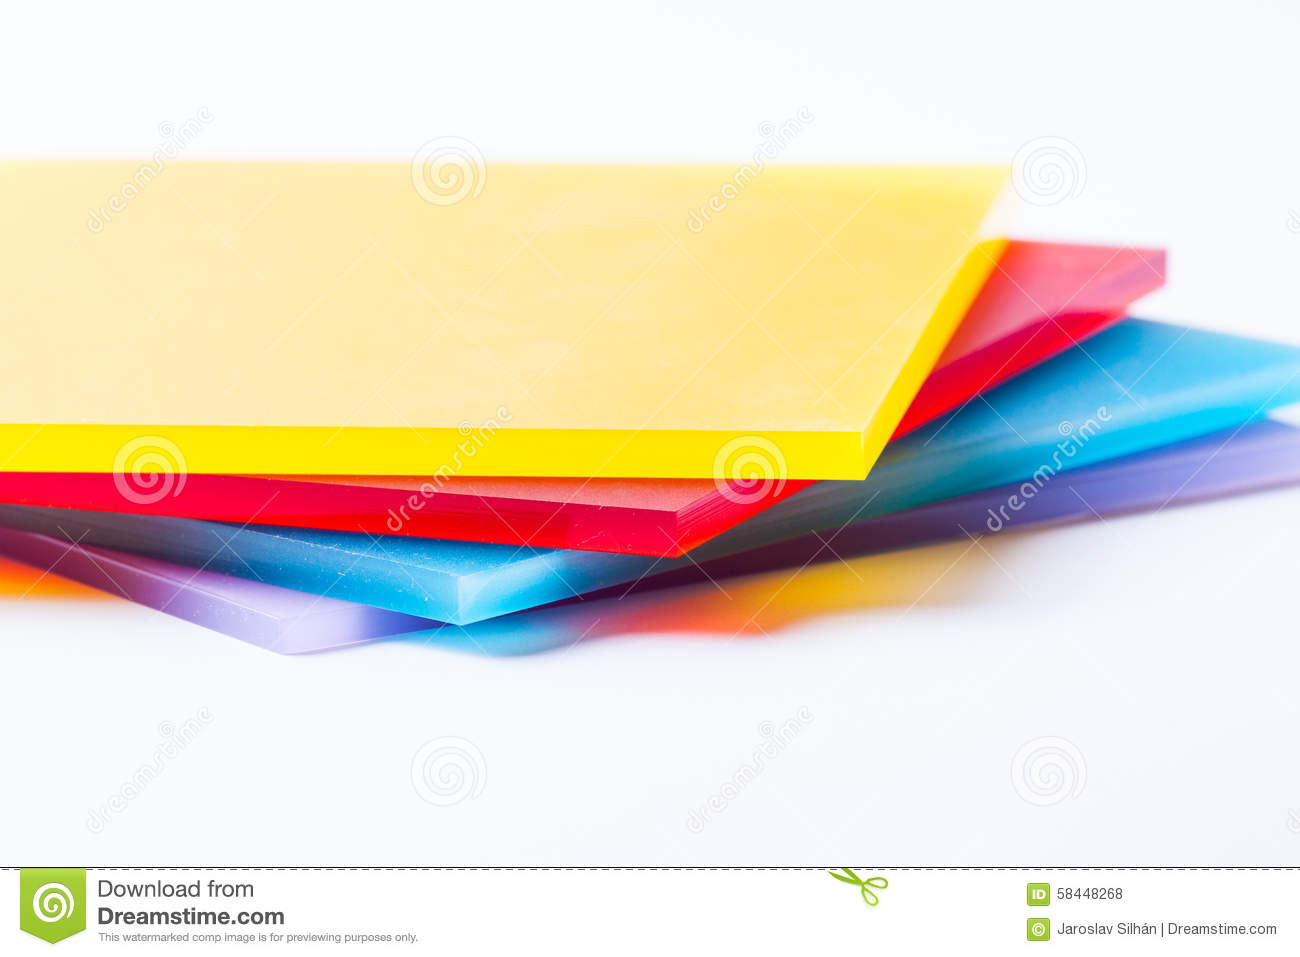 Plexiglass sheets colored stock photo. Image of architectural - 58448268